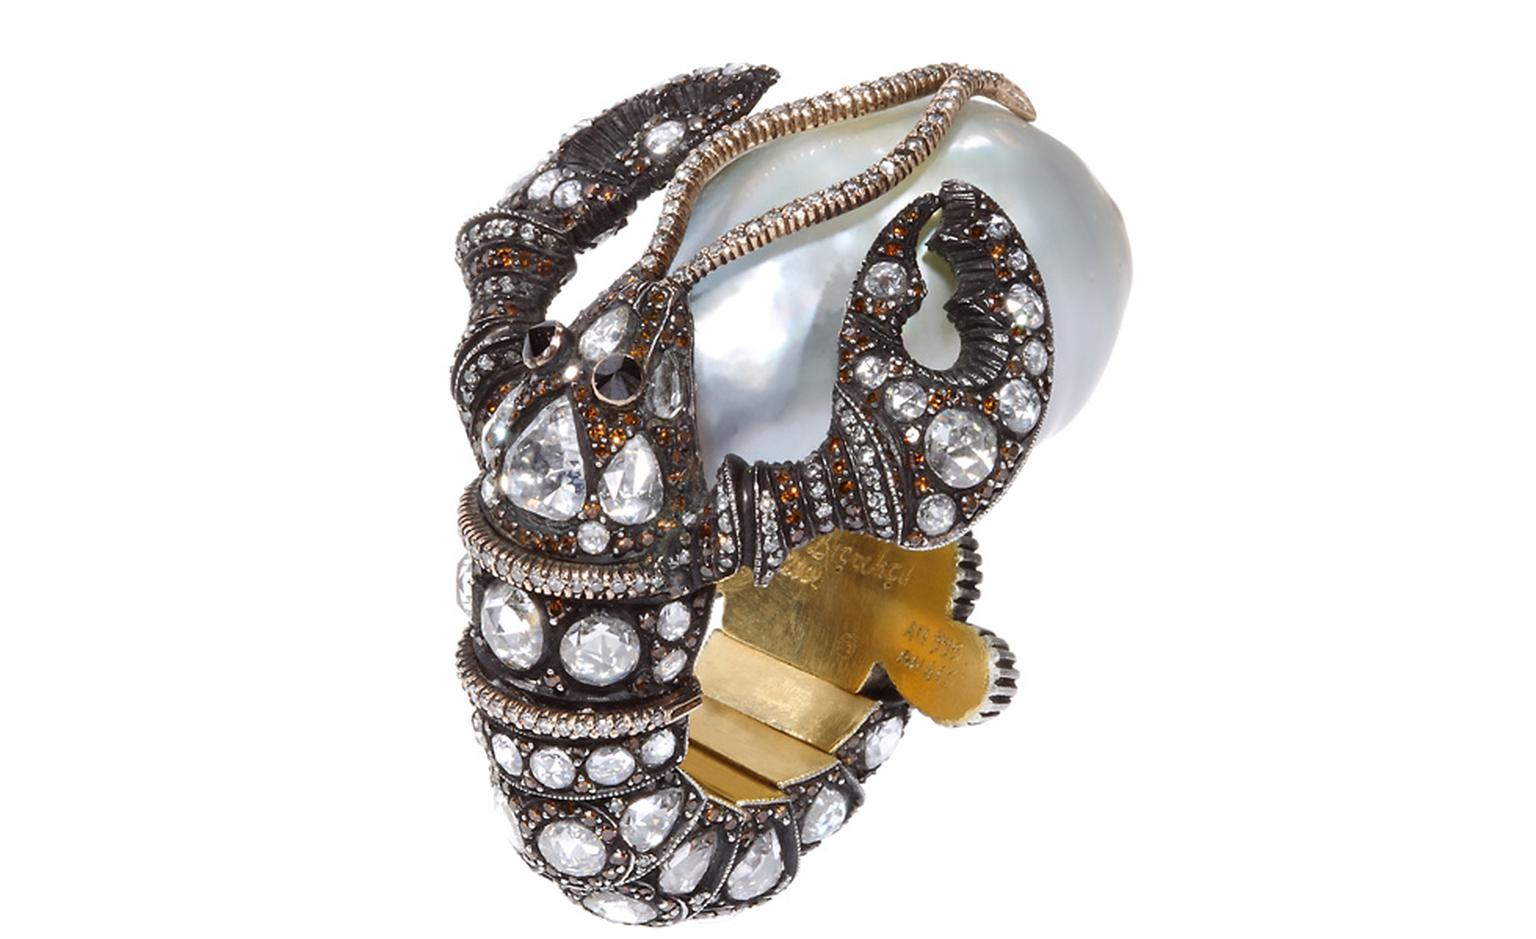 A lobster cradling a baroque pearl slips onto the finger in this Sevan Biçakçi ring.